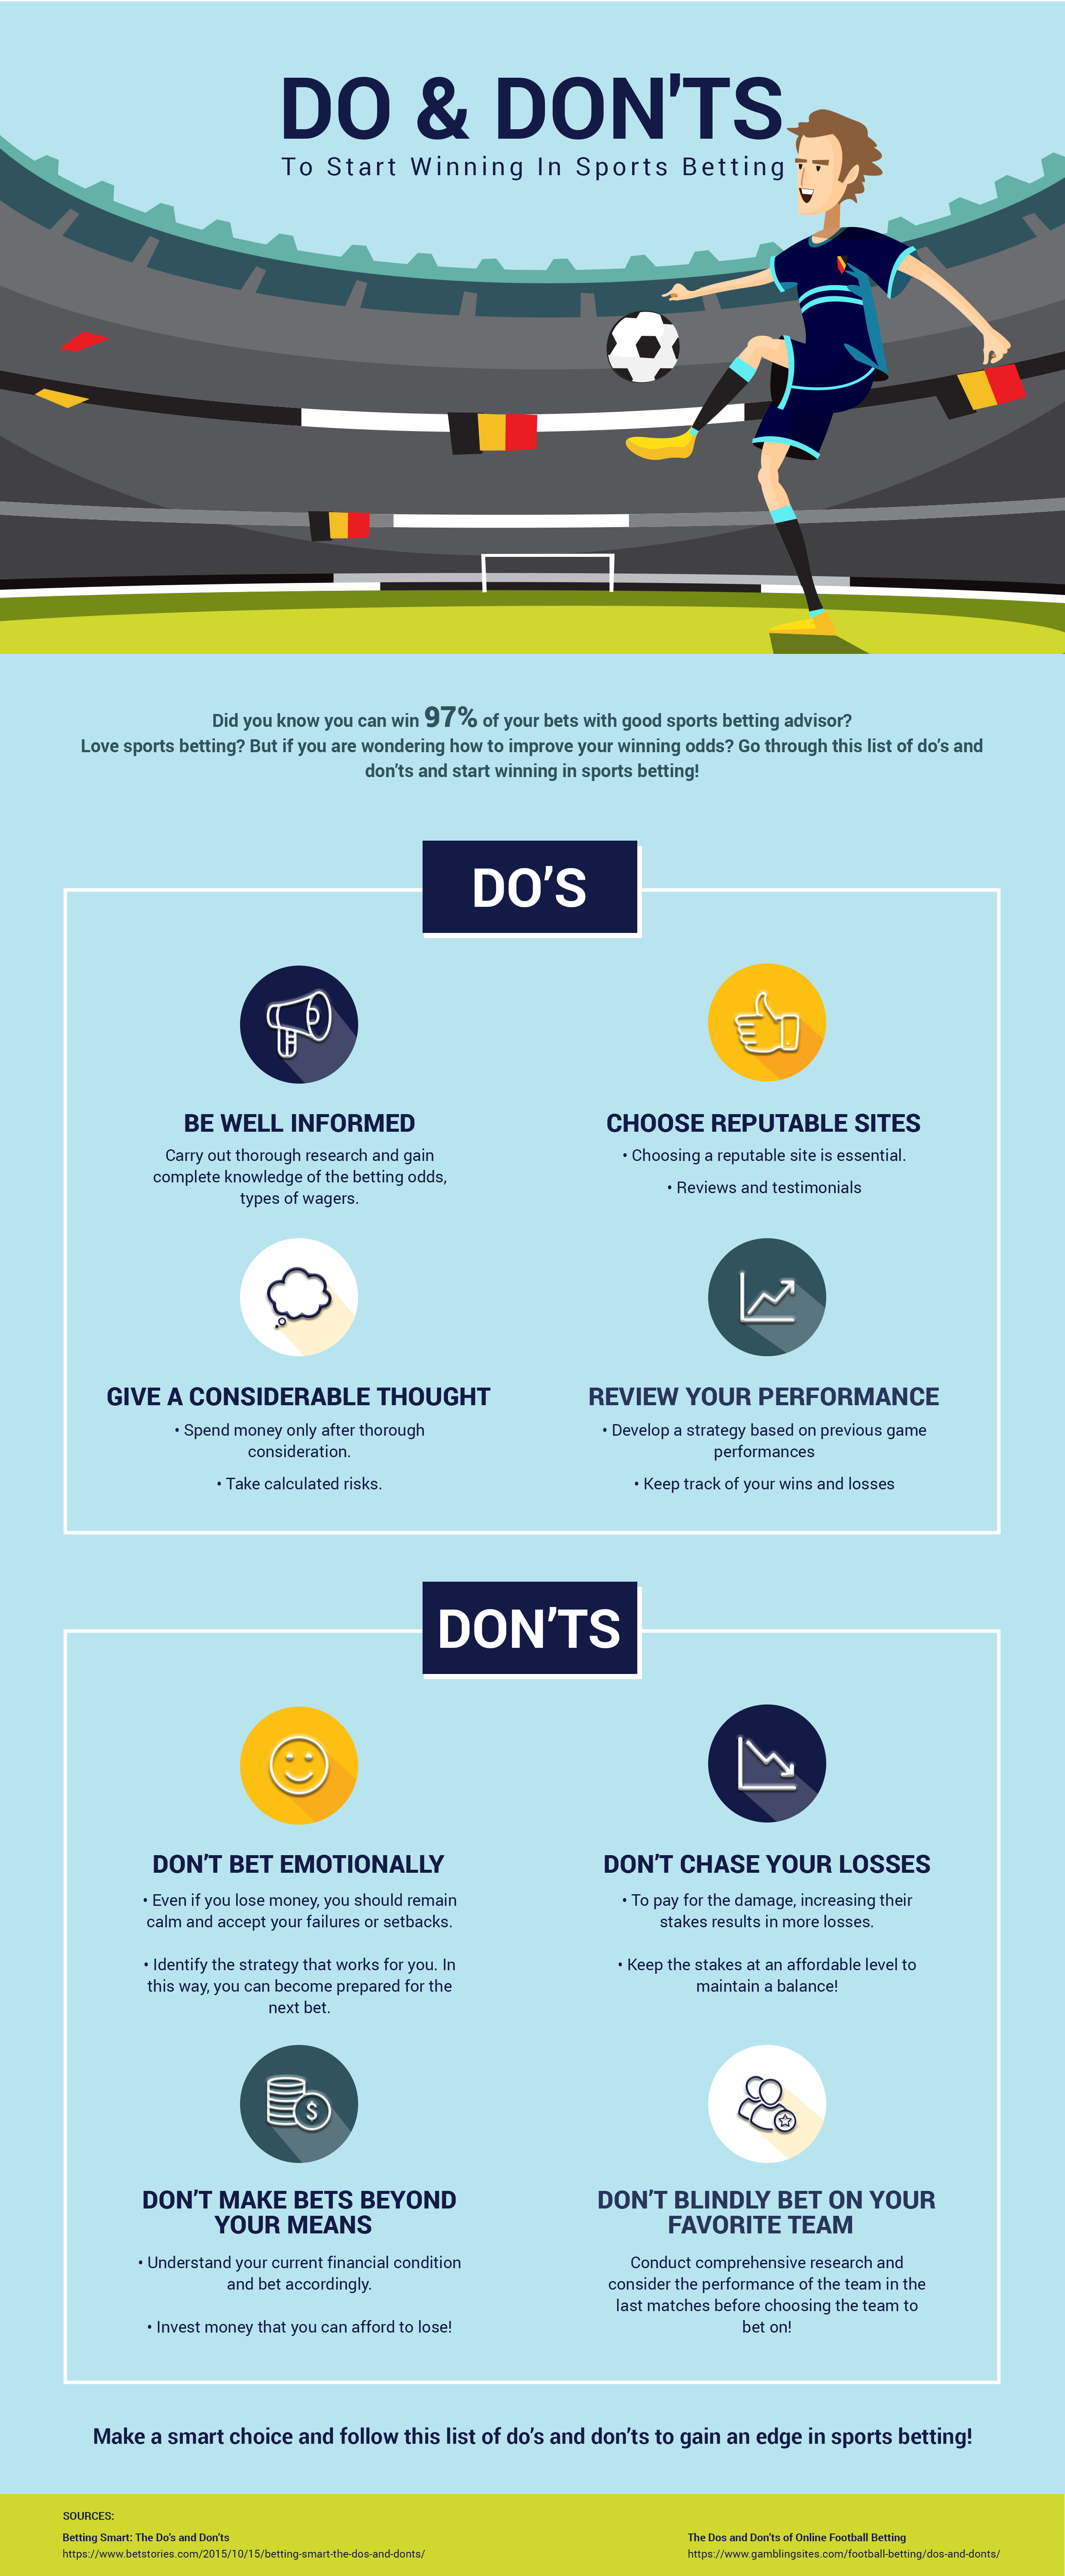 [Infographic] DOs & DON'Ts to Start Winning In Sports Betting